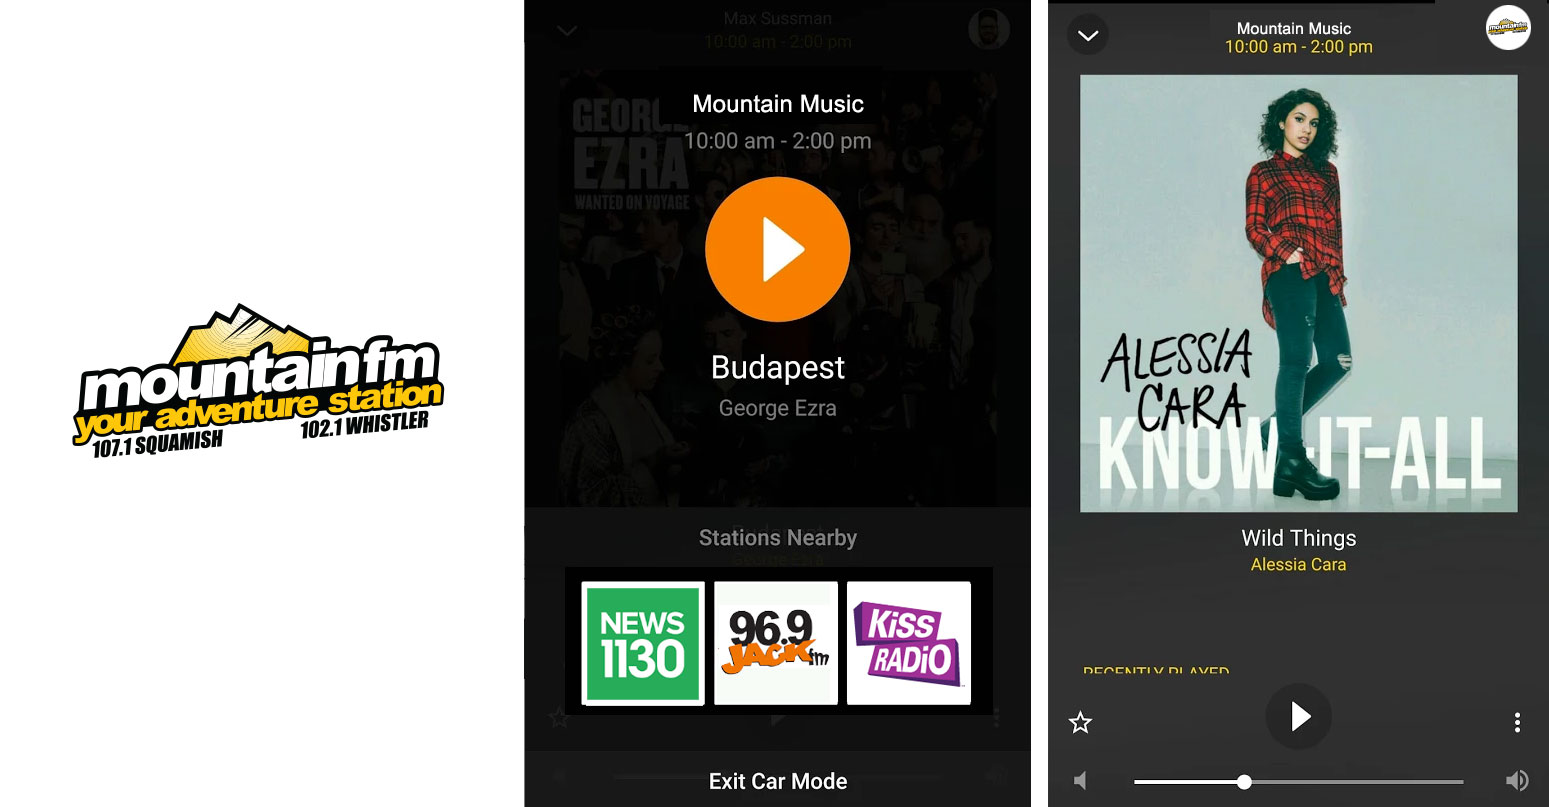 We've completely re-imagined and re-designed the Mountain FM app! Check out the updates and let us know what you think!